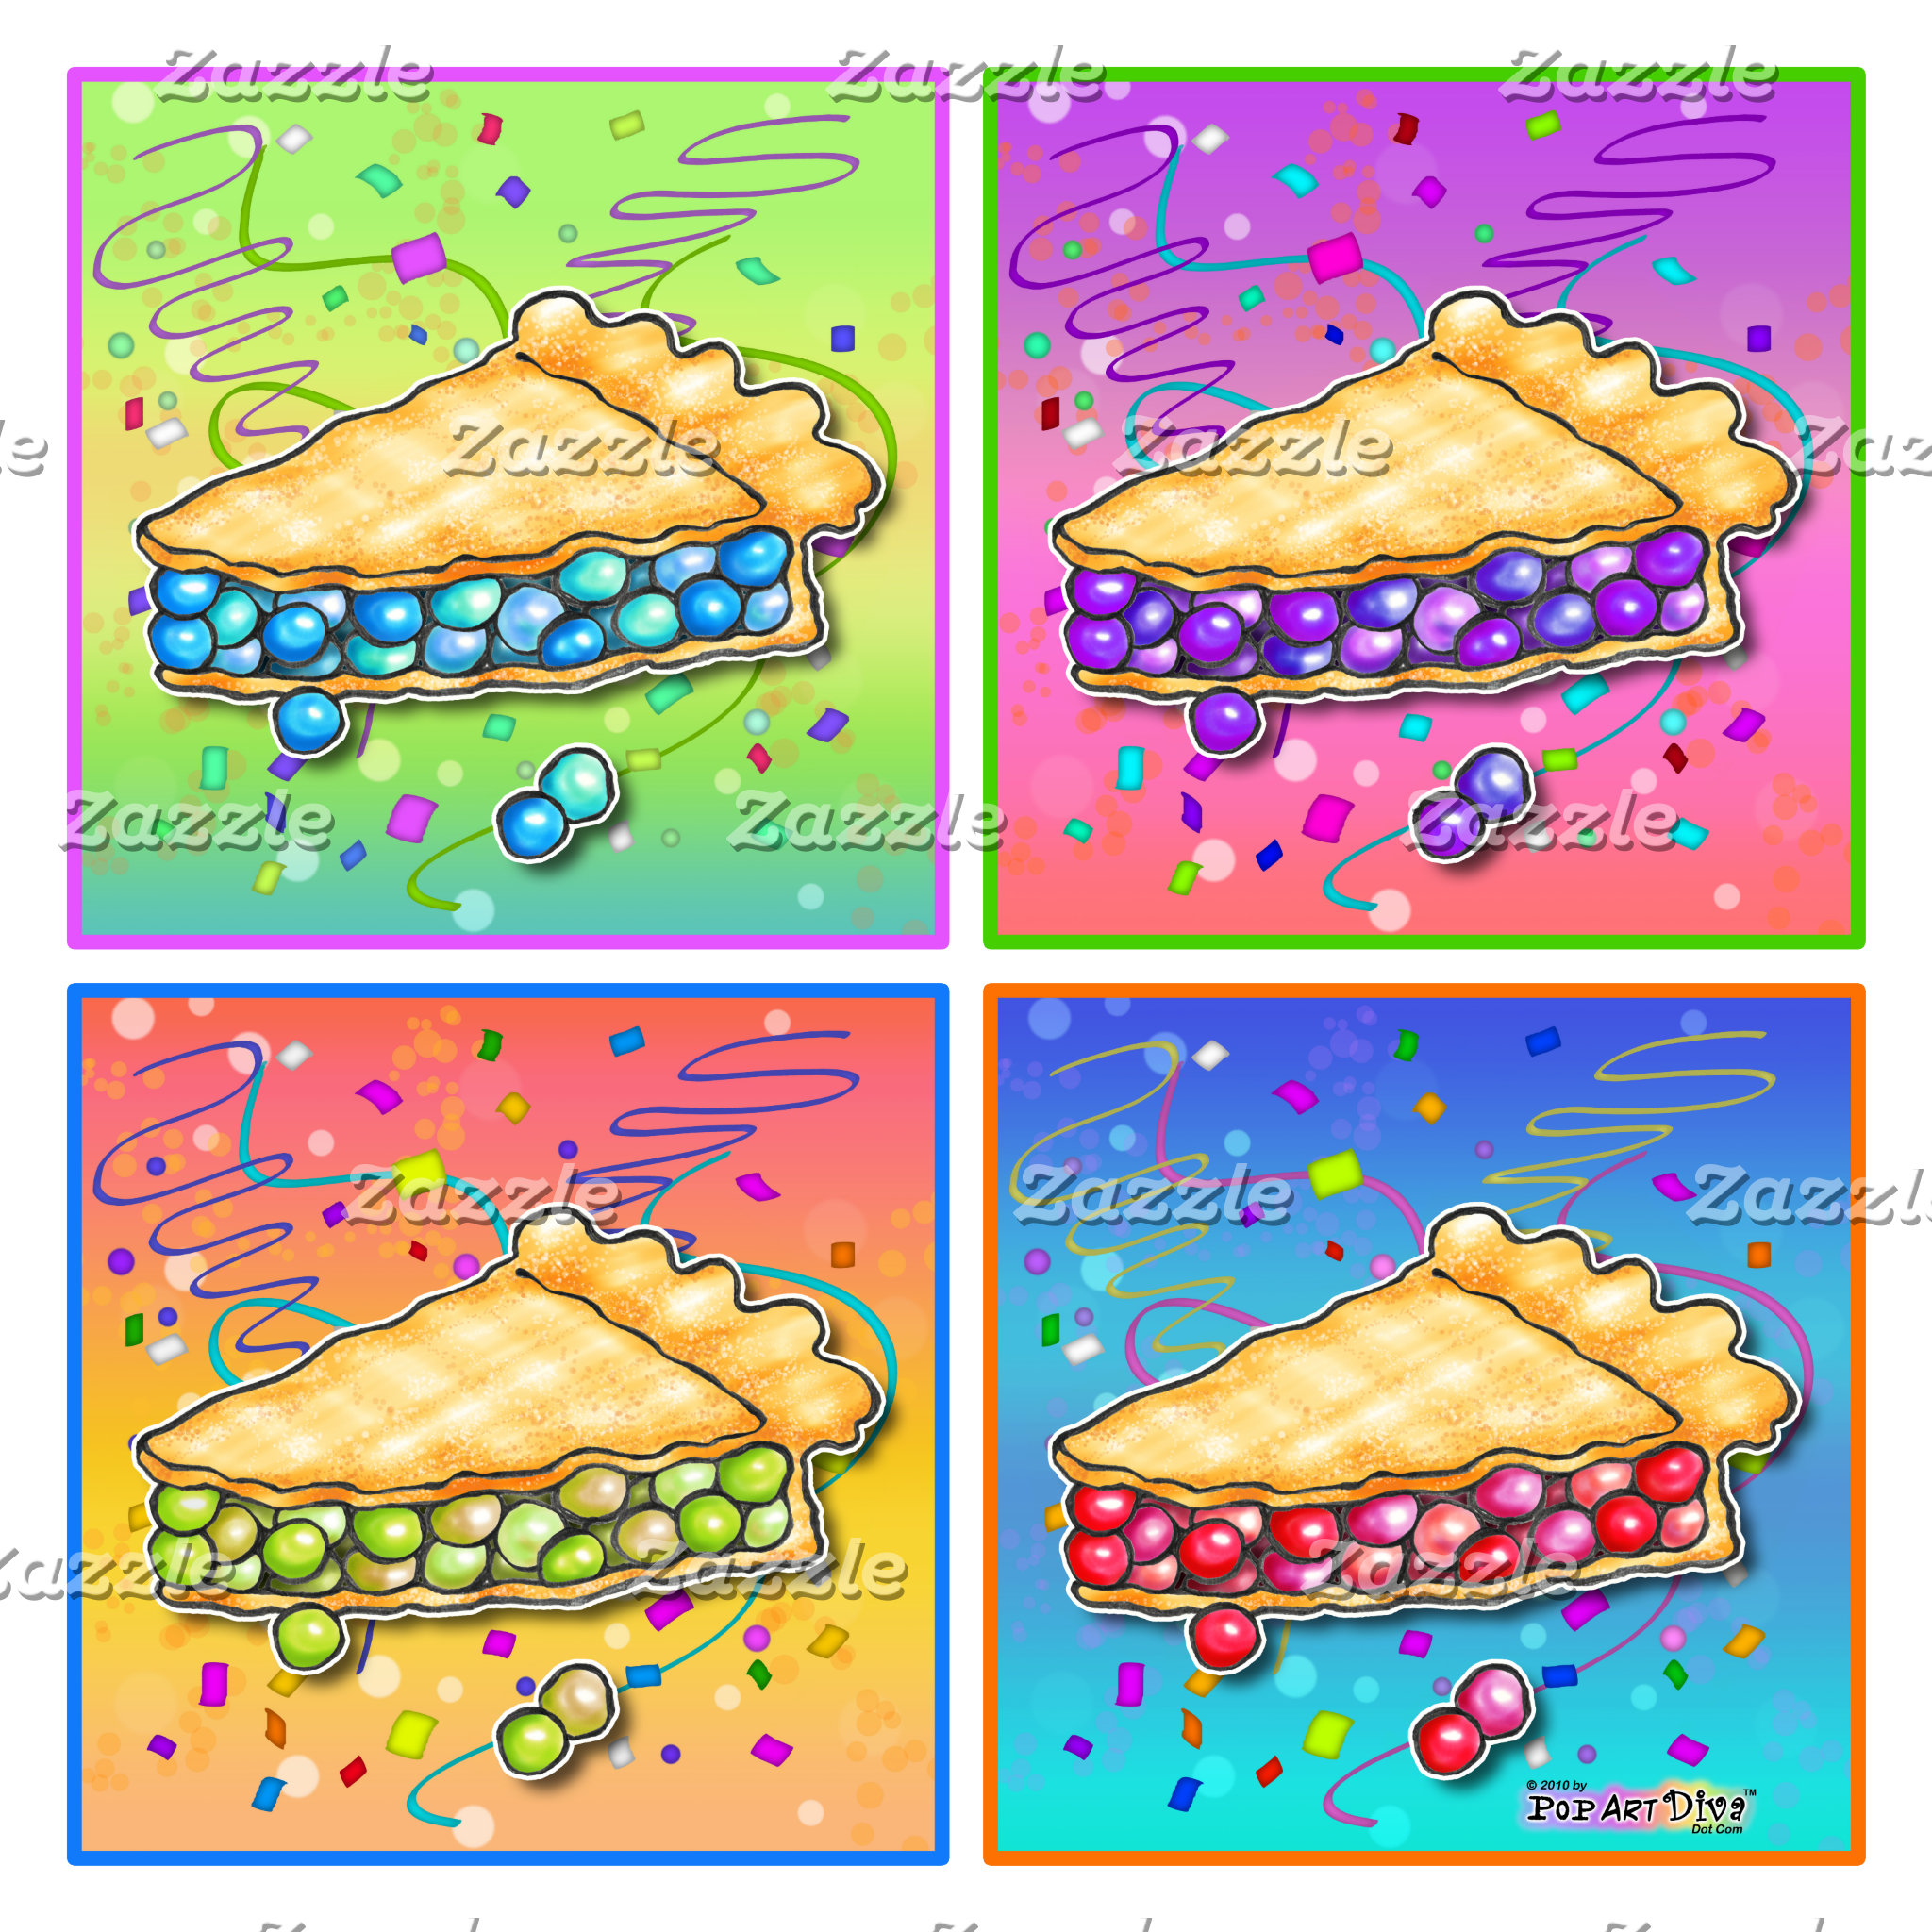 y. PIE POP ART